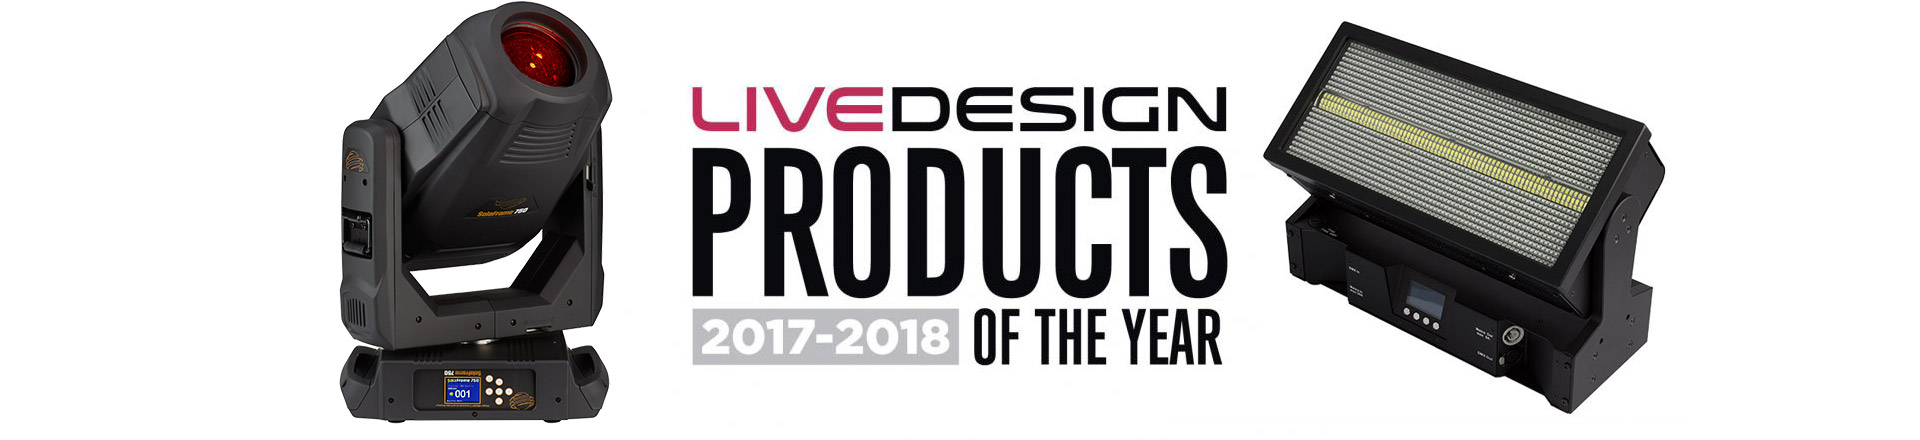 "Nagrody ""Product of the Year"" według Live Design 2017-2018"